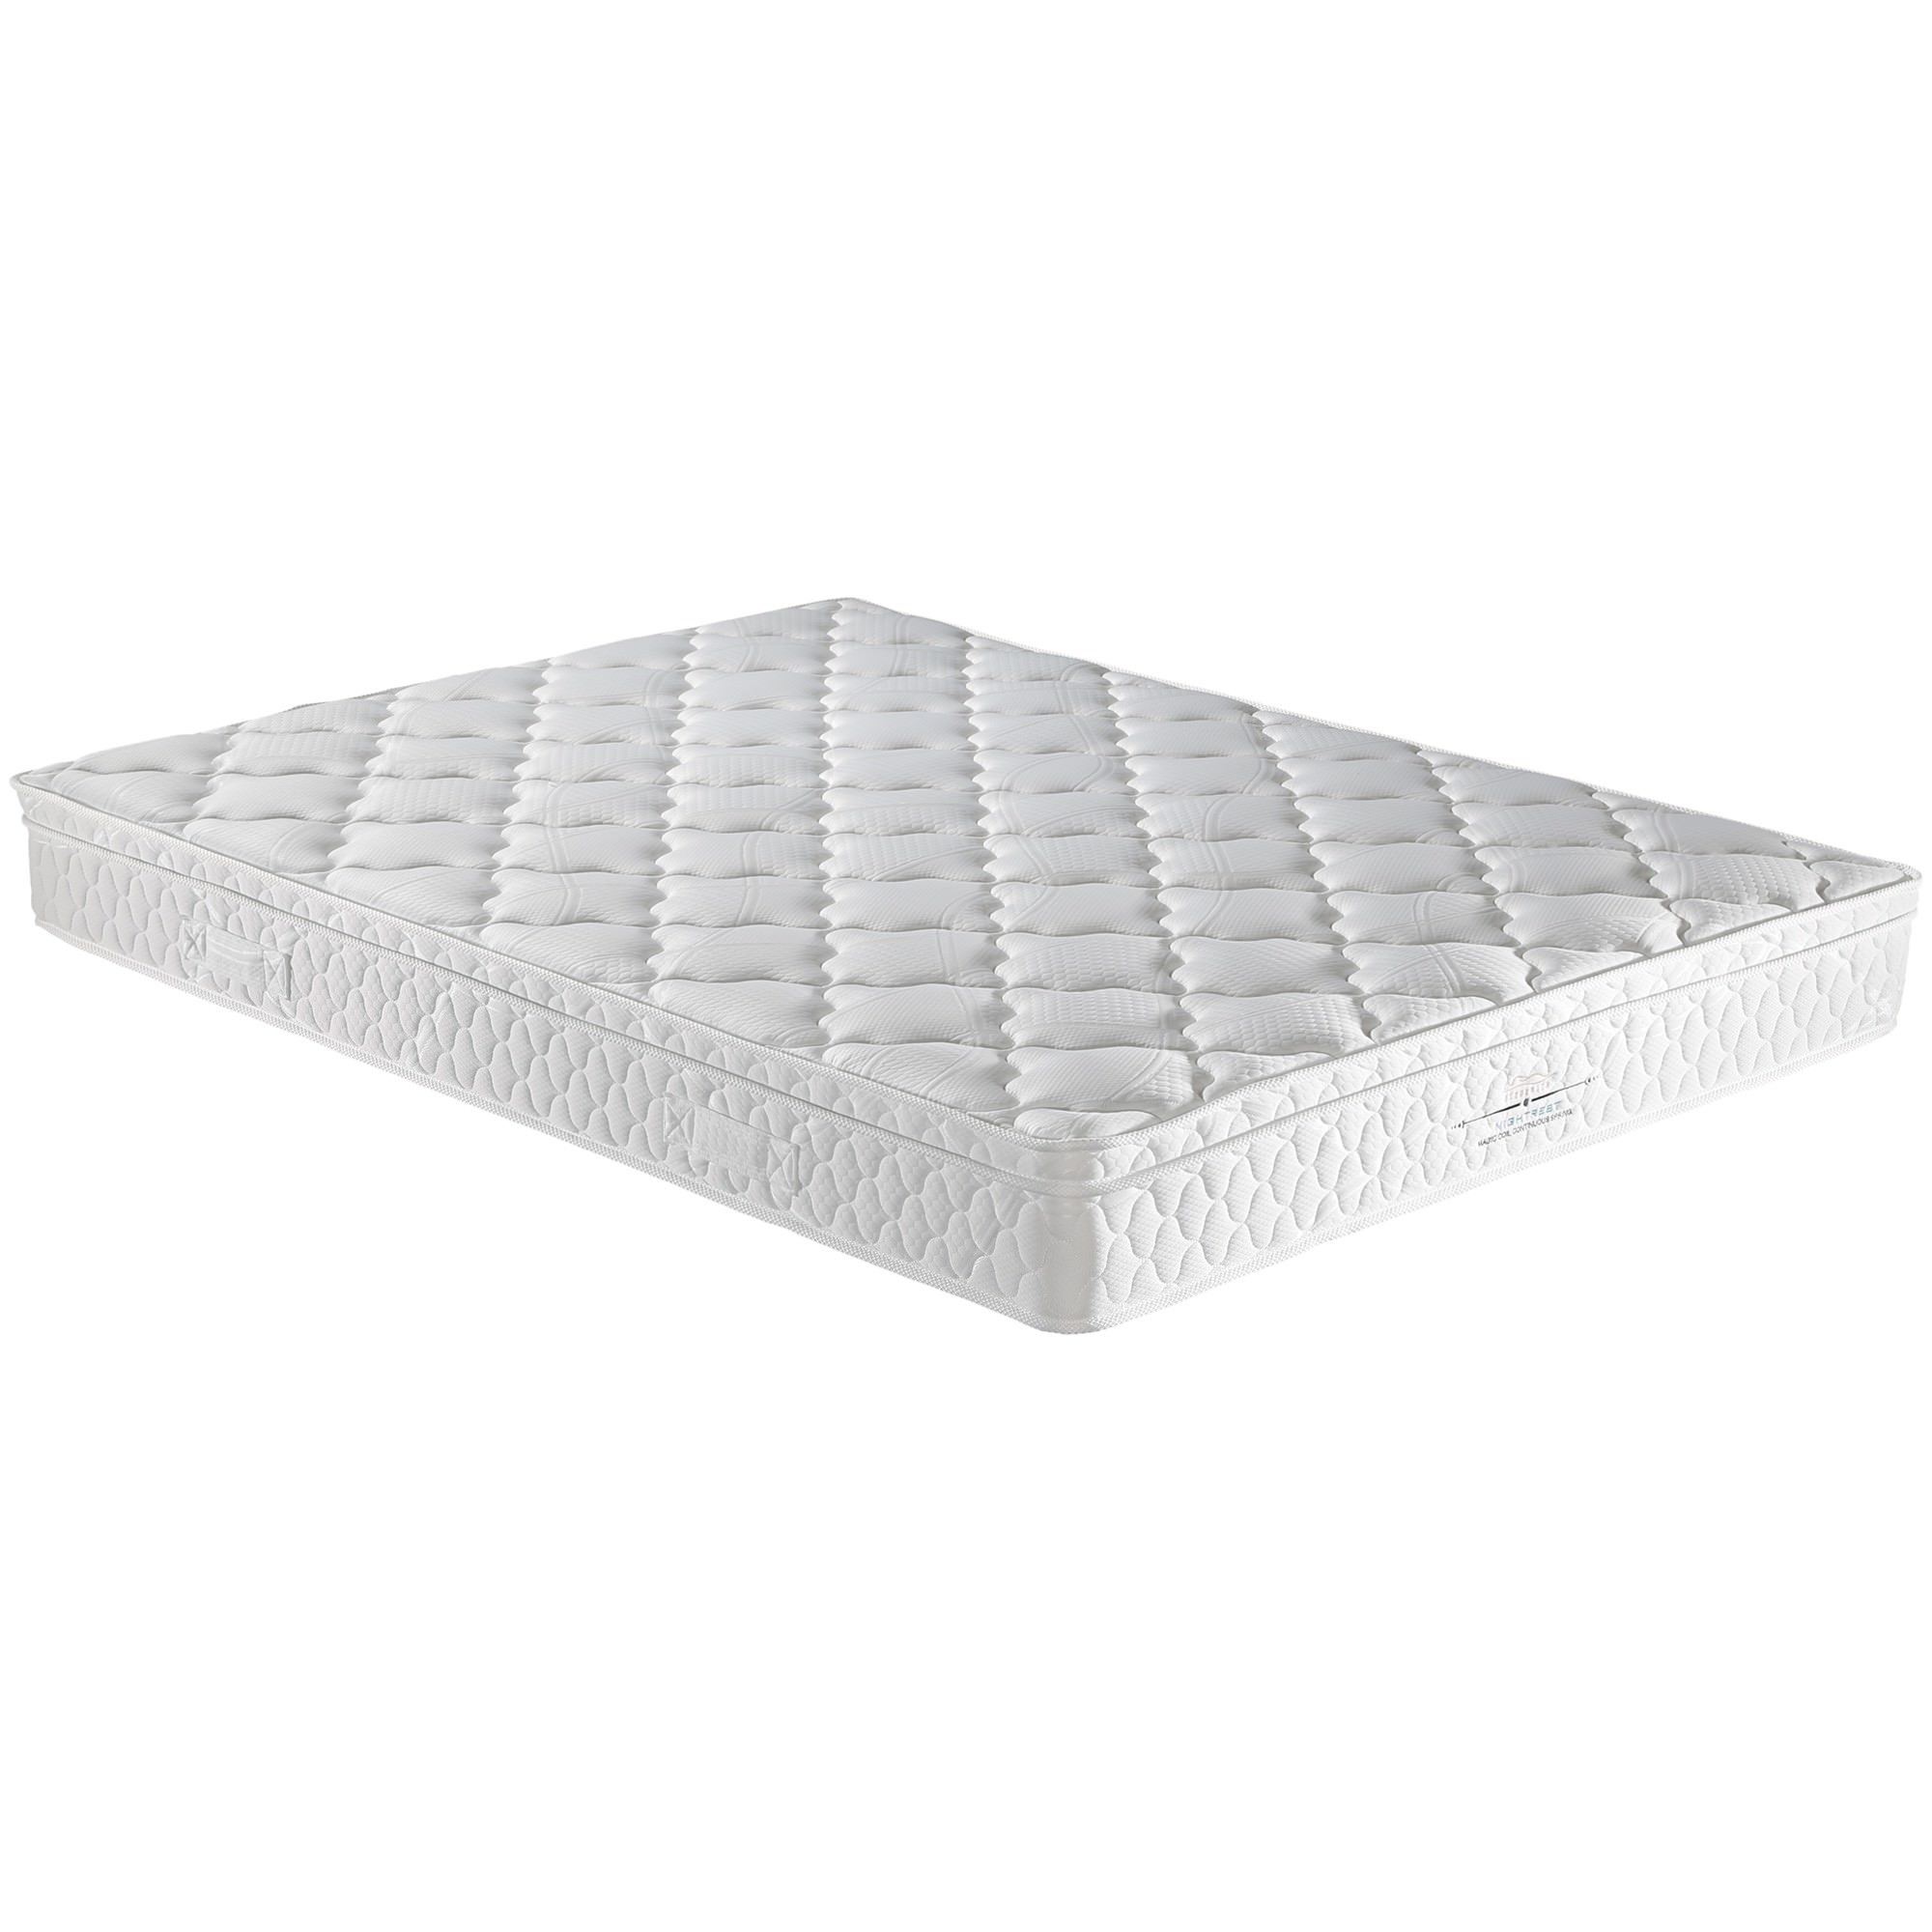 Nightrest Magic Coil Continuous Spring Mattress with Pillow Top, Single